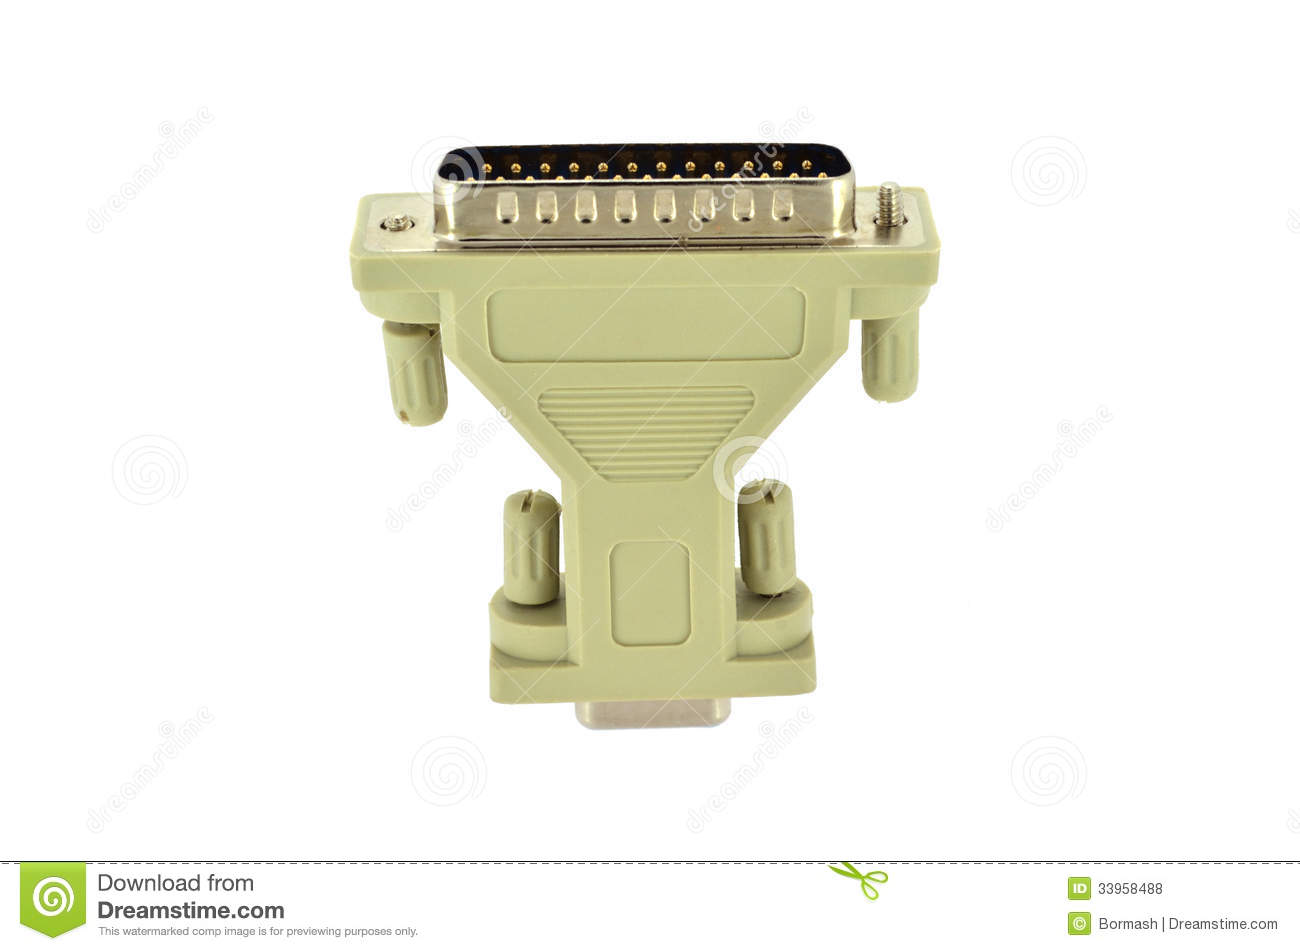 Computer Monitor Plug : D sub plug and socket adapter royalty free stock photos